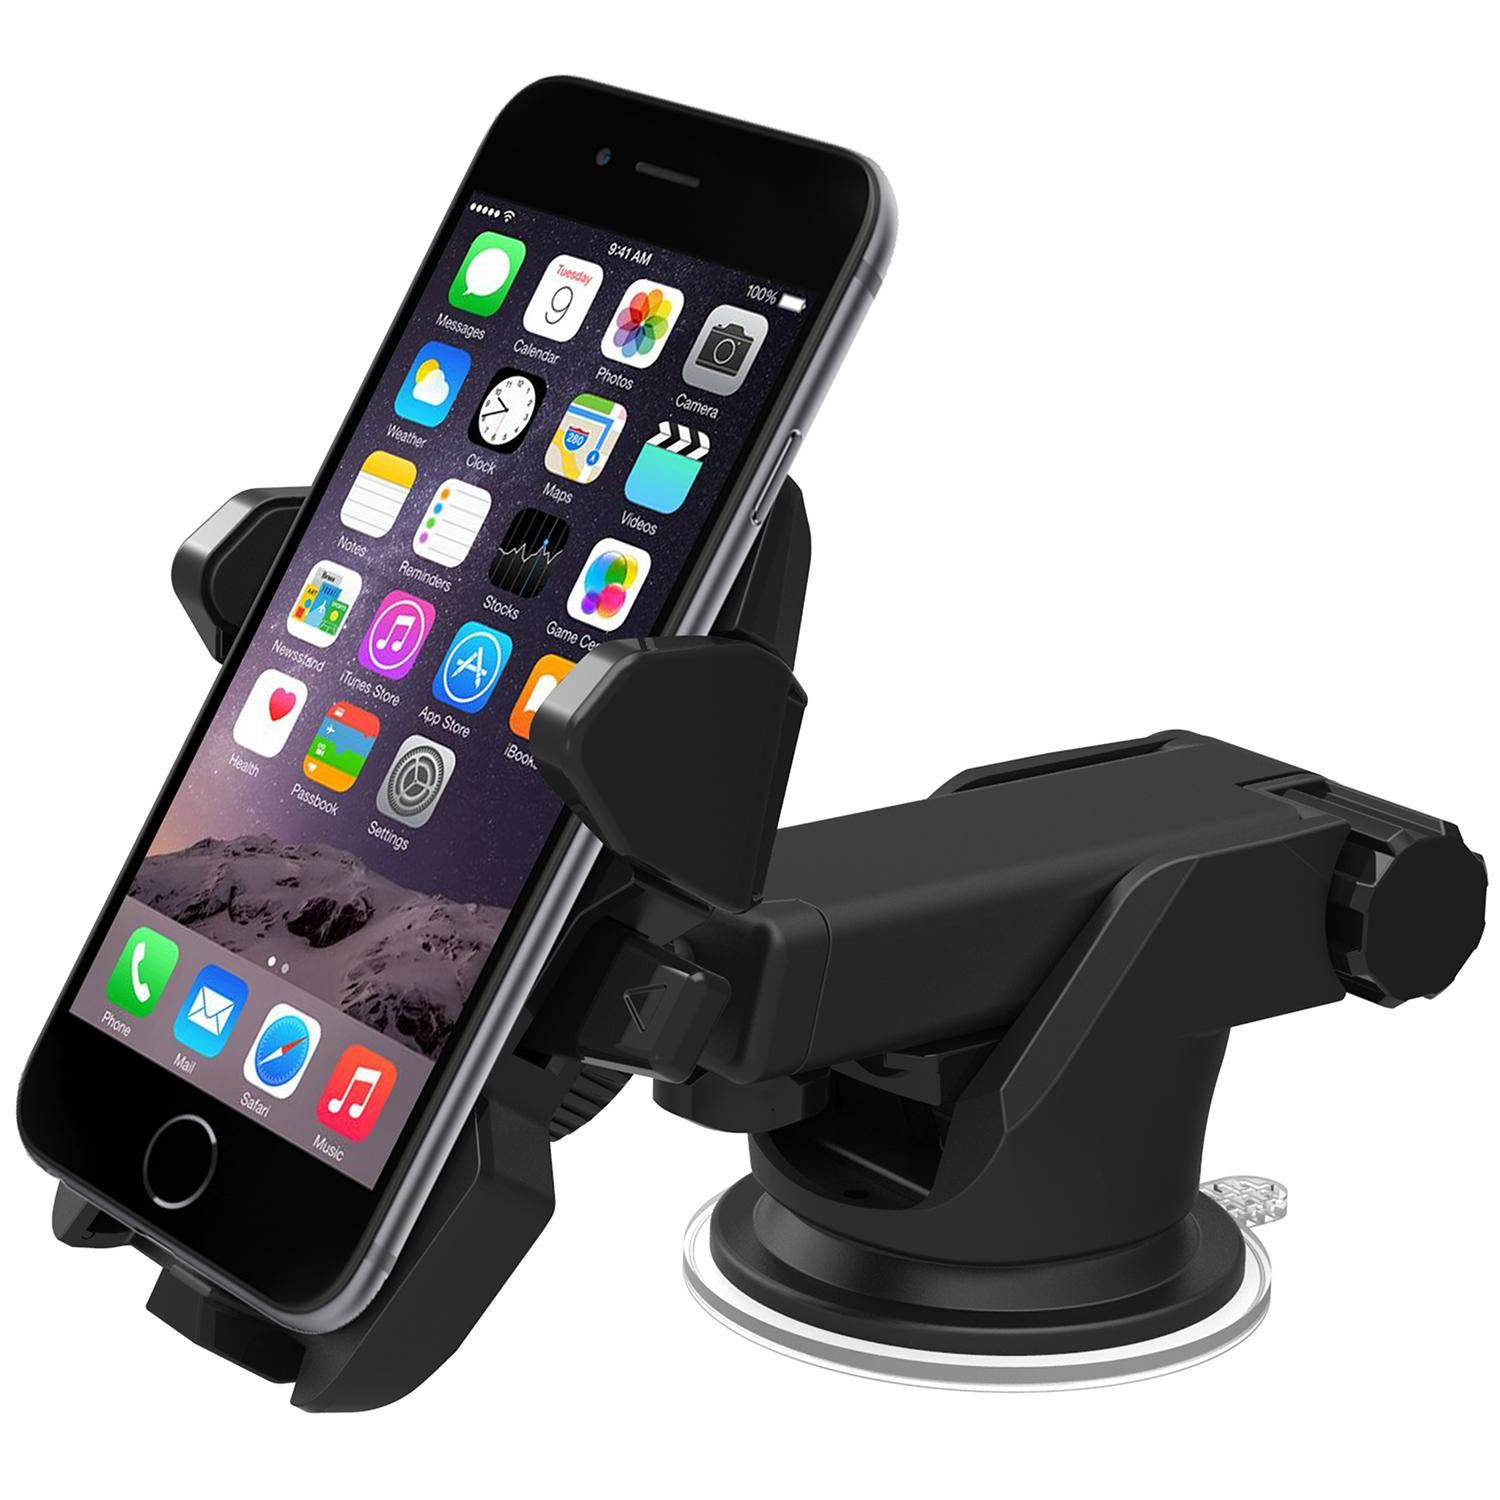 Universal Car Mirror Rearview GPS Phone Mount Car Cellphone Holders for iPhone 7//7 Plus Galaxy S8//S8 Plus